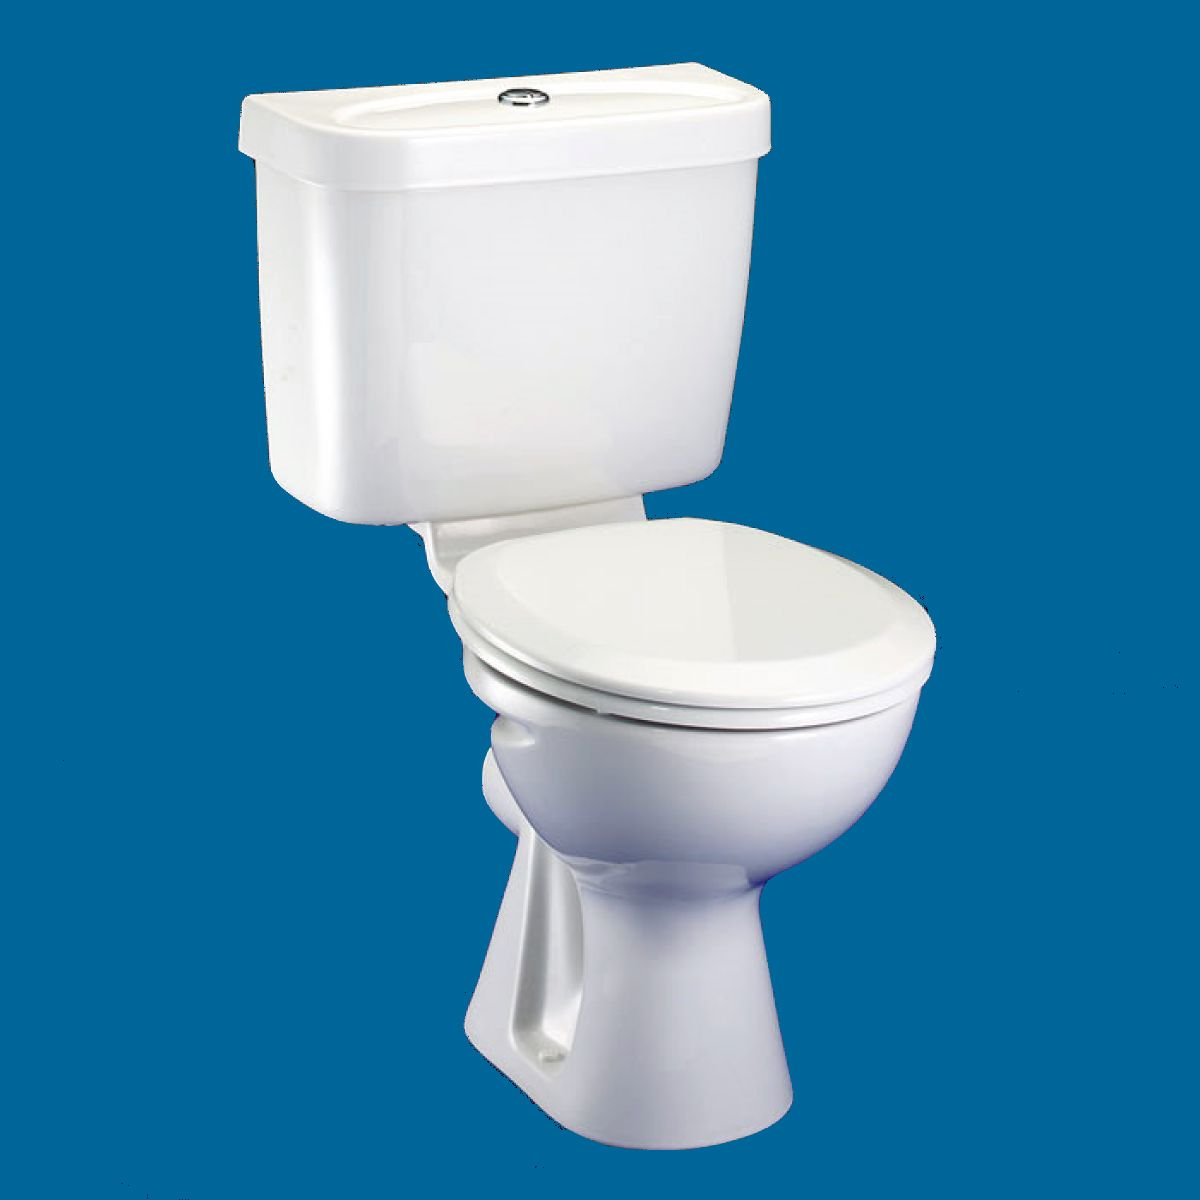 Saturn Toilet Seat and Cover S40401 Price: £101.99   Toilet Seats ...